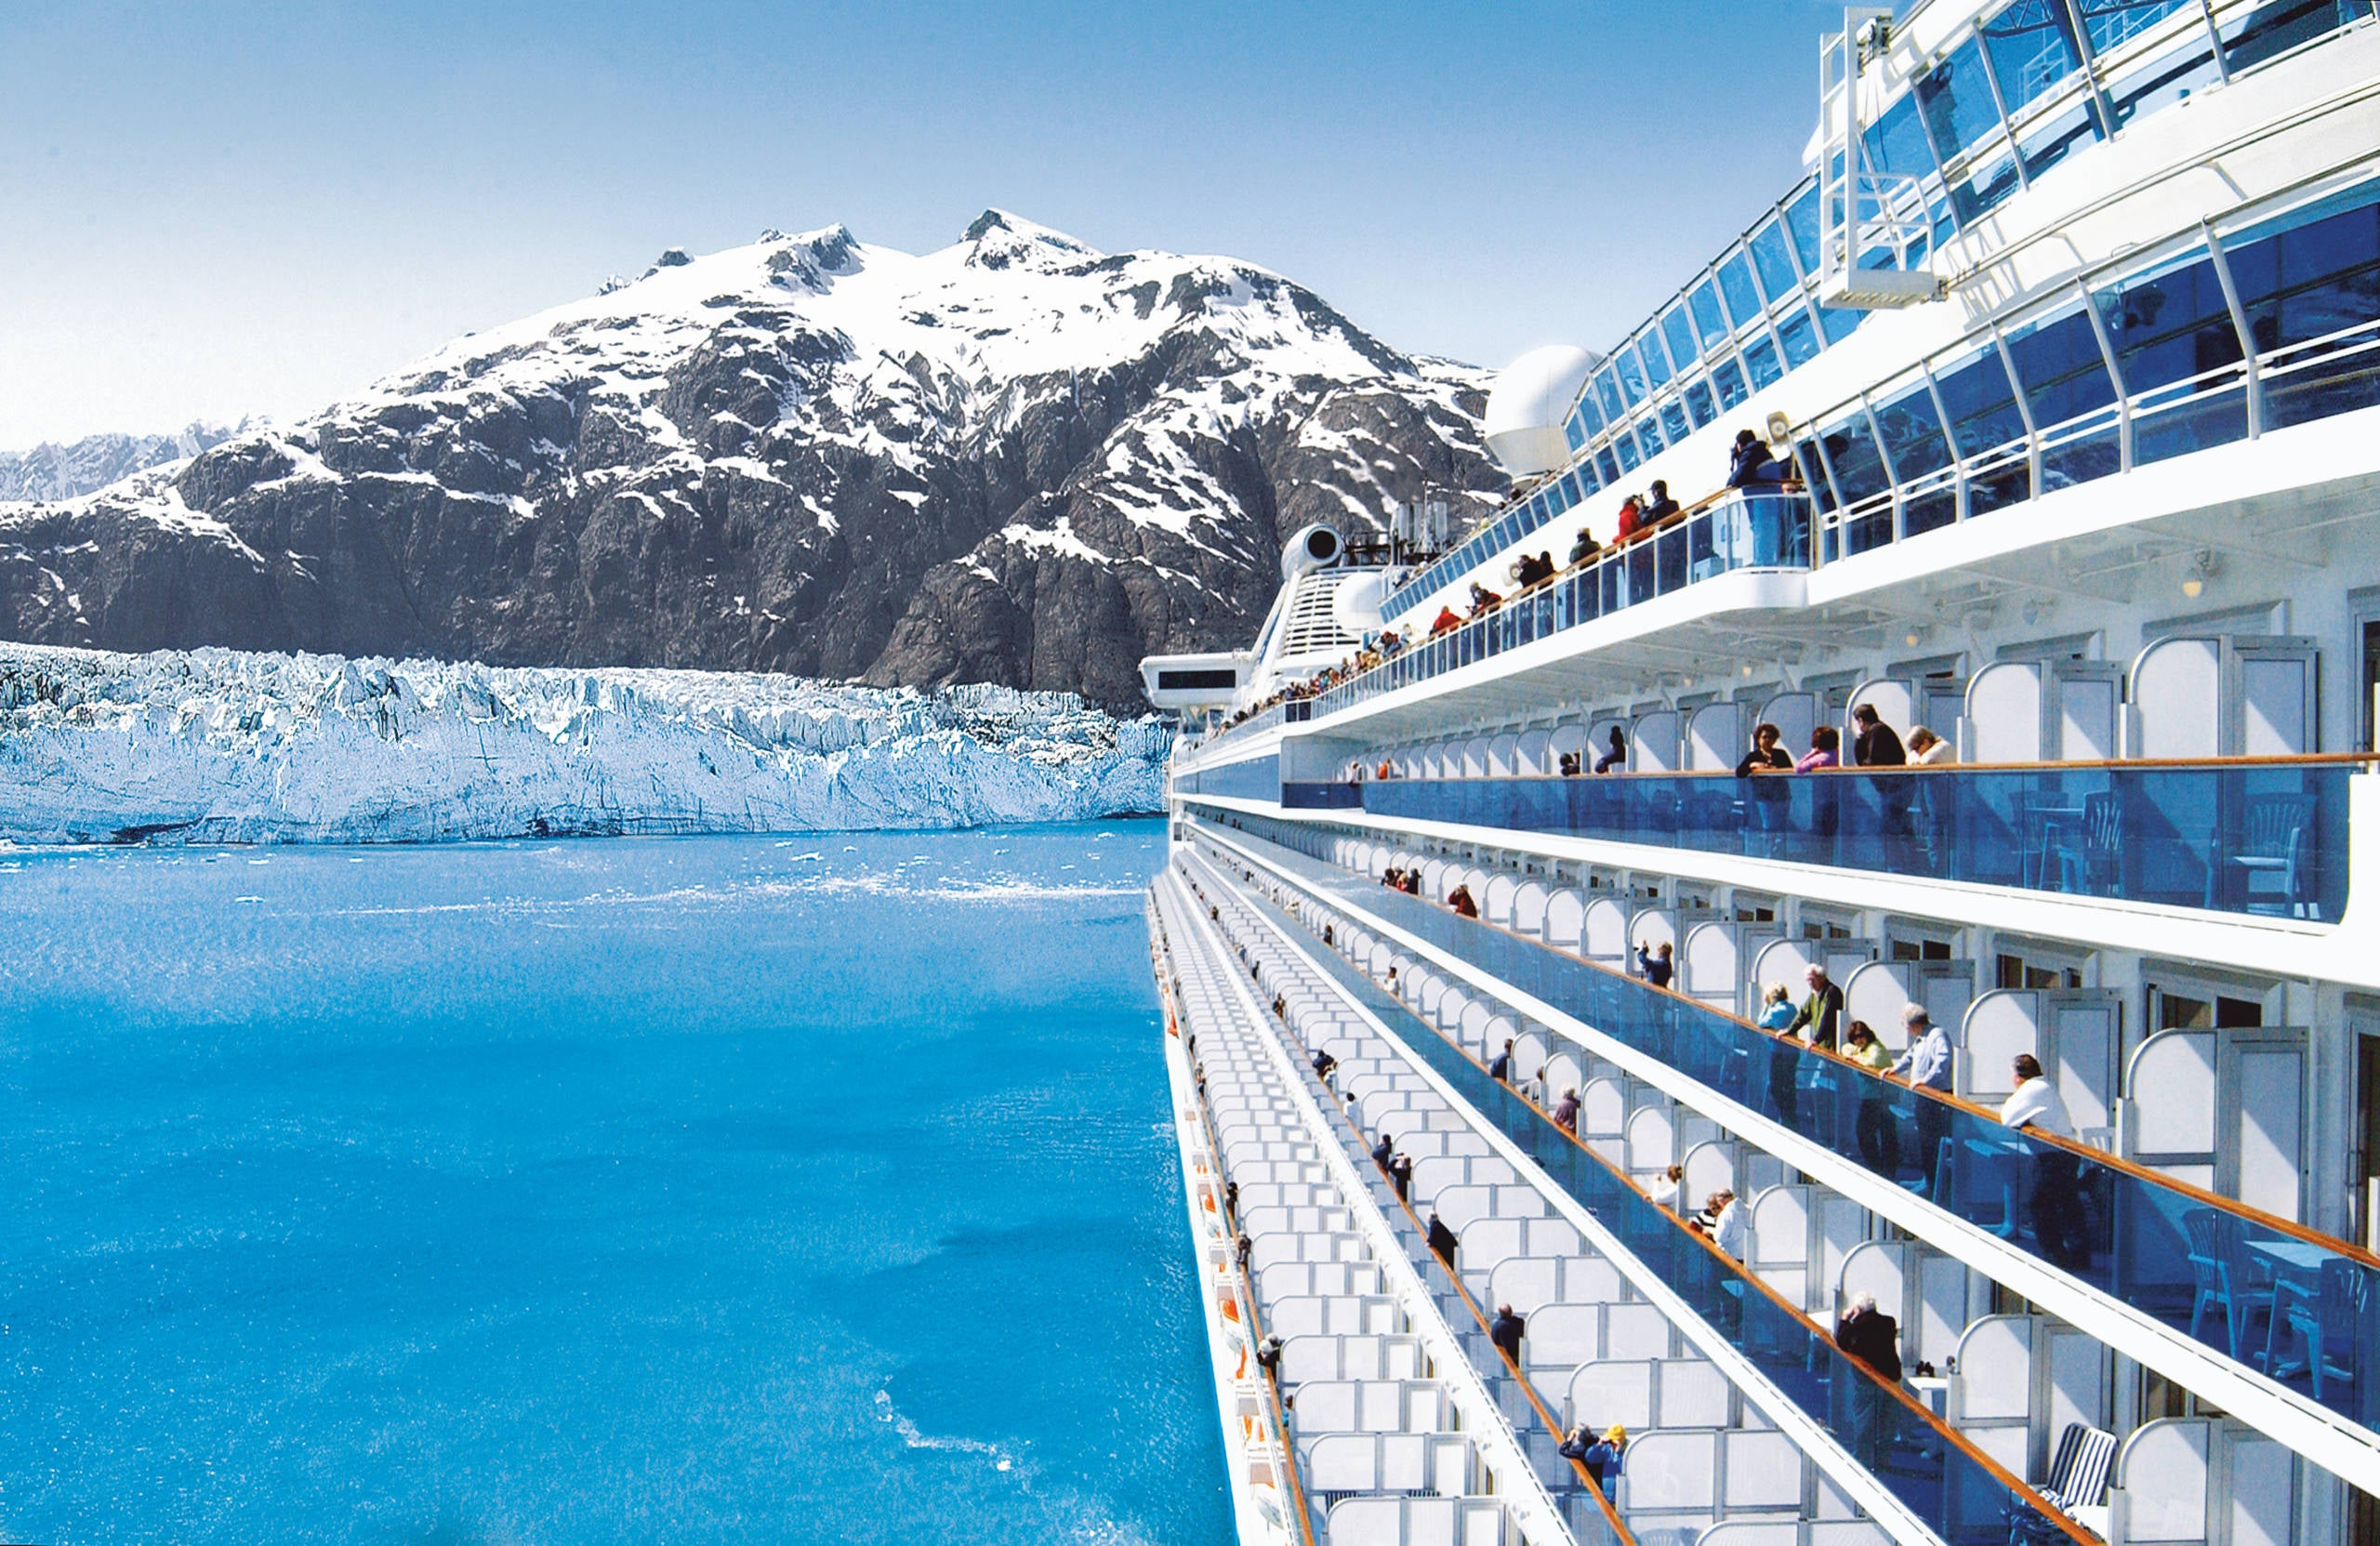 Cruise lines have officially started to cancel Alaska sailings - The Points Guy